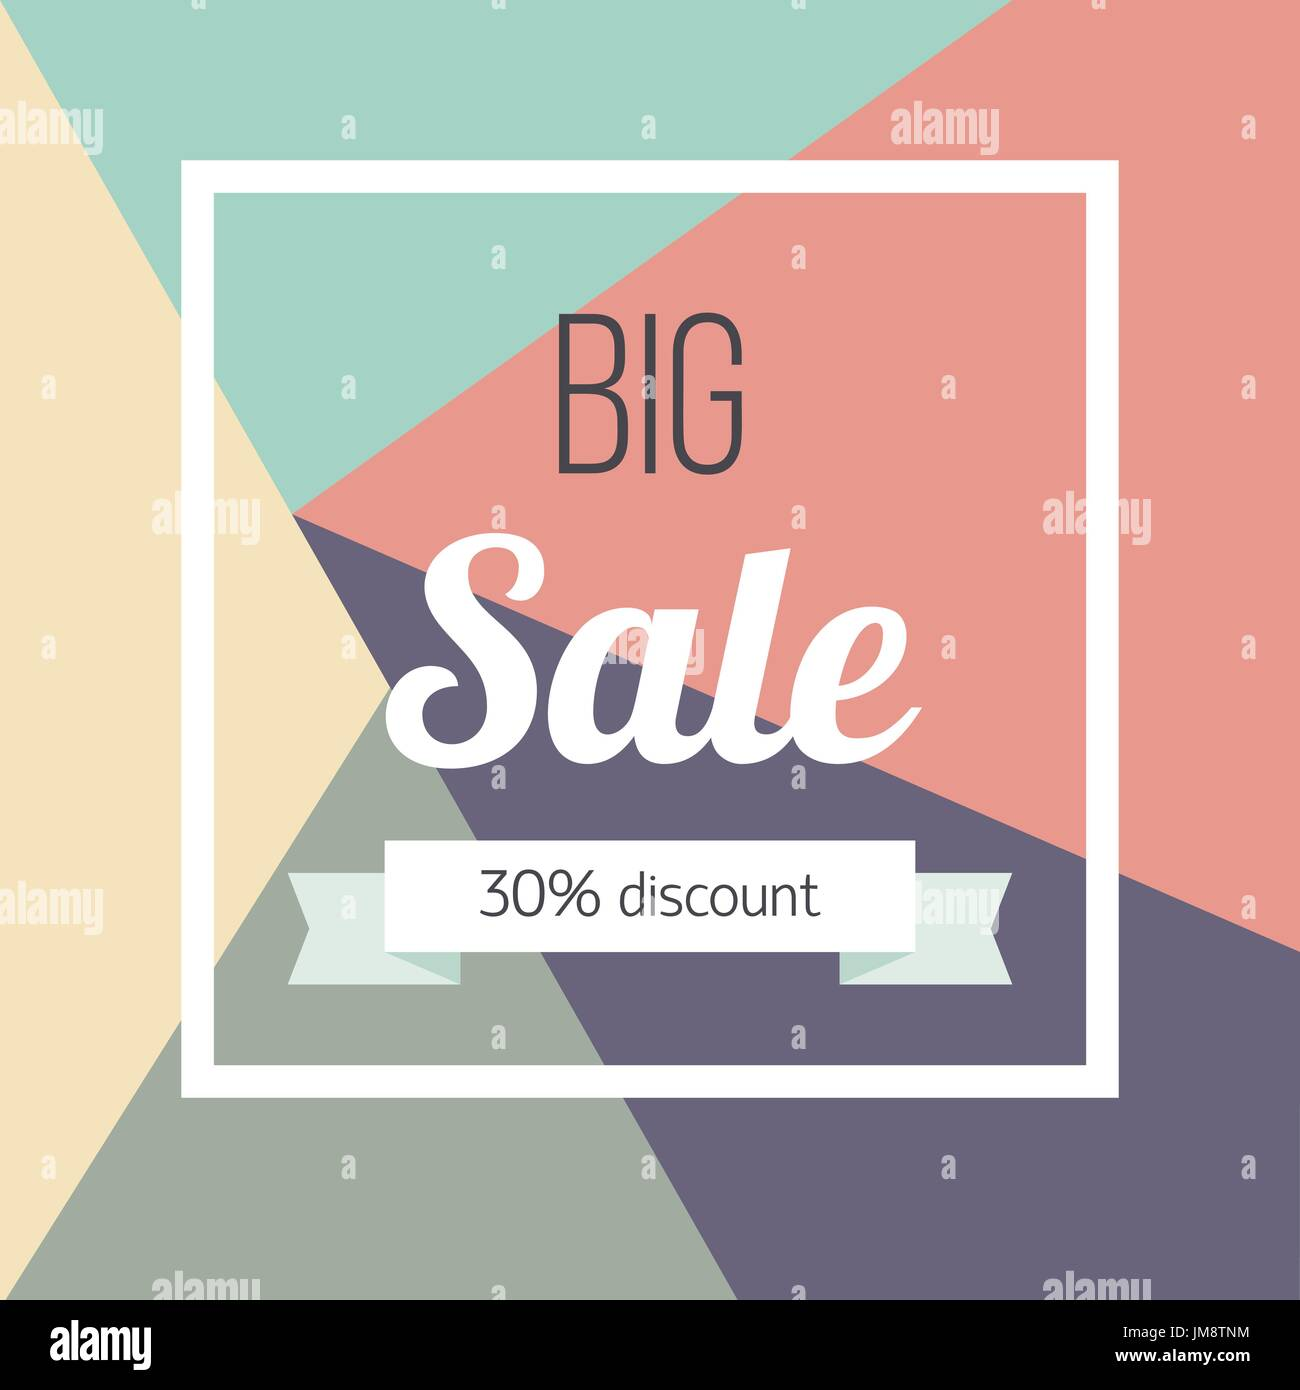 13b5a5974 Big sale poster Vector illustration Template design for the online store,  shops, poster and banner The inscription Big sale